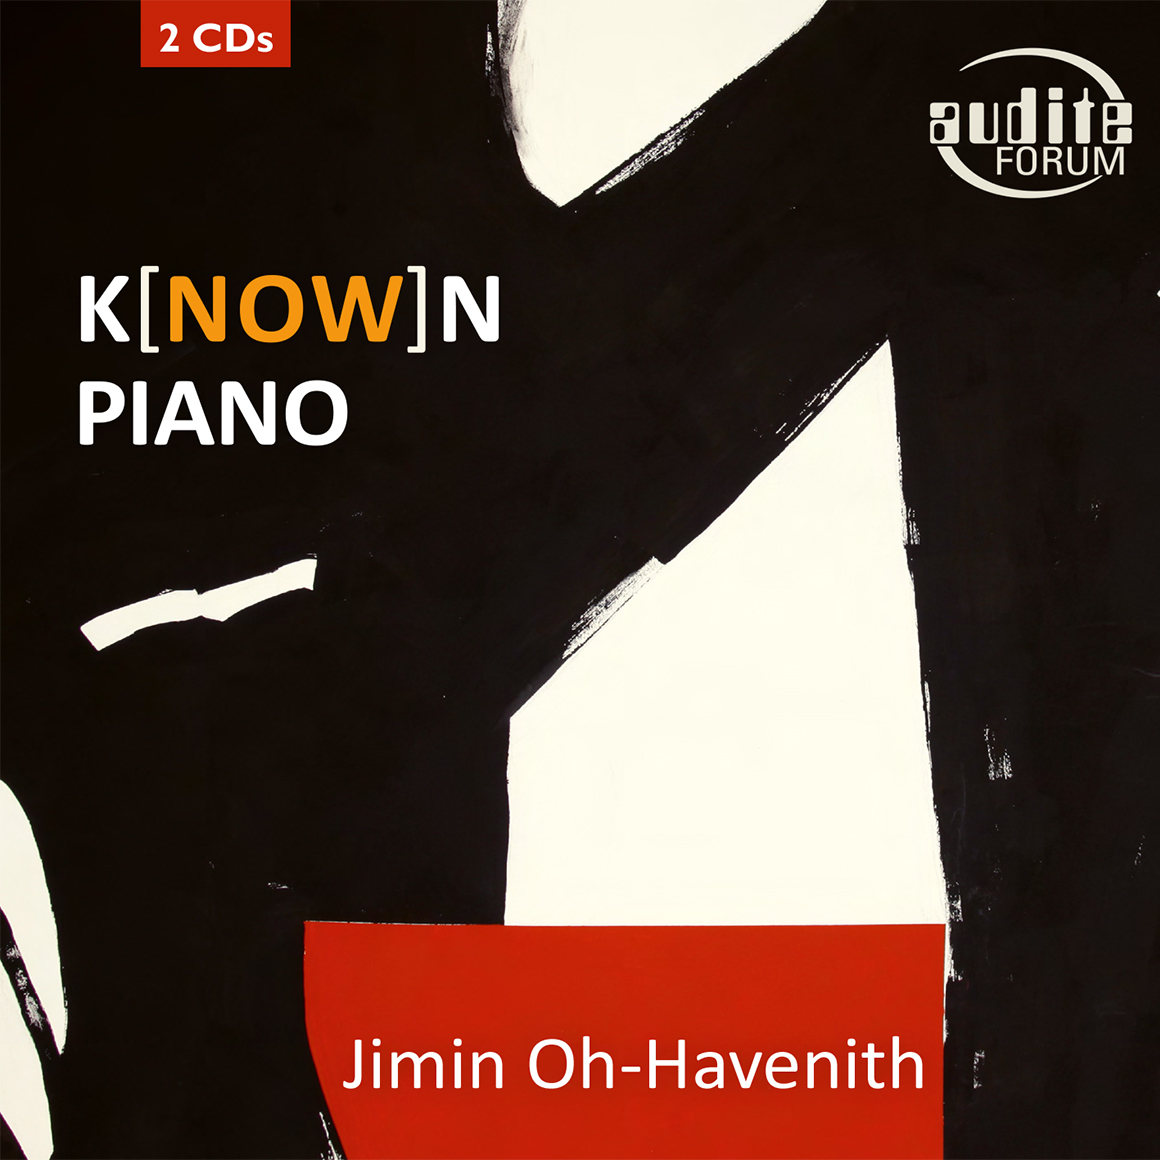 K[NOW]N_PIANO_Jimin Oh-Havenith